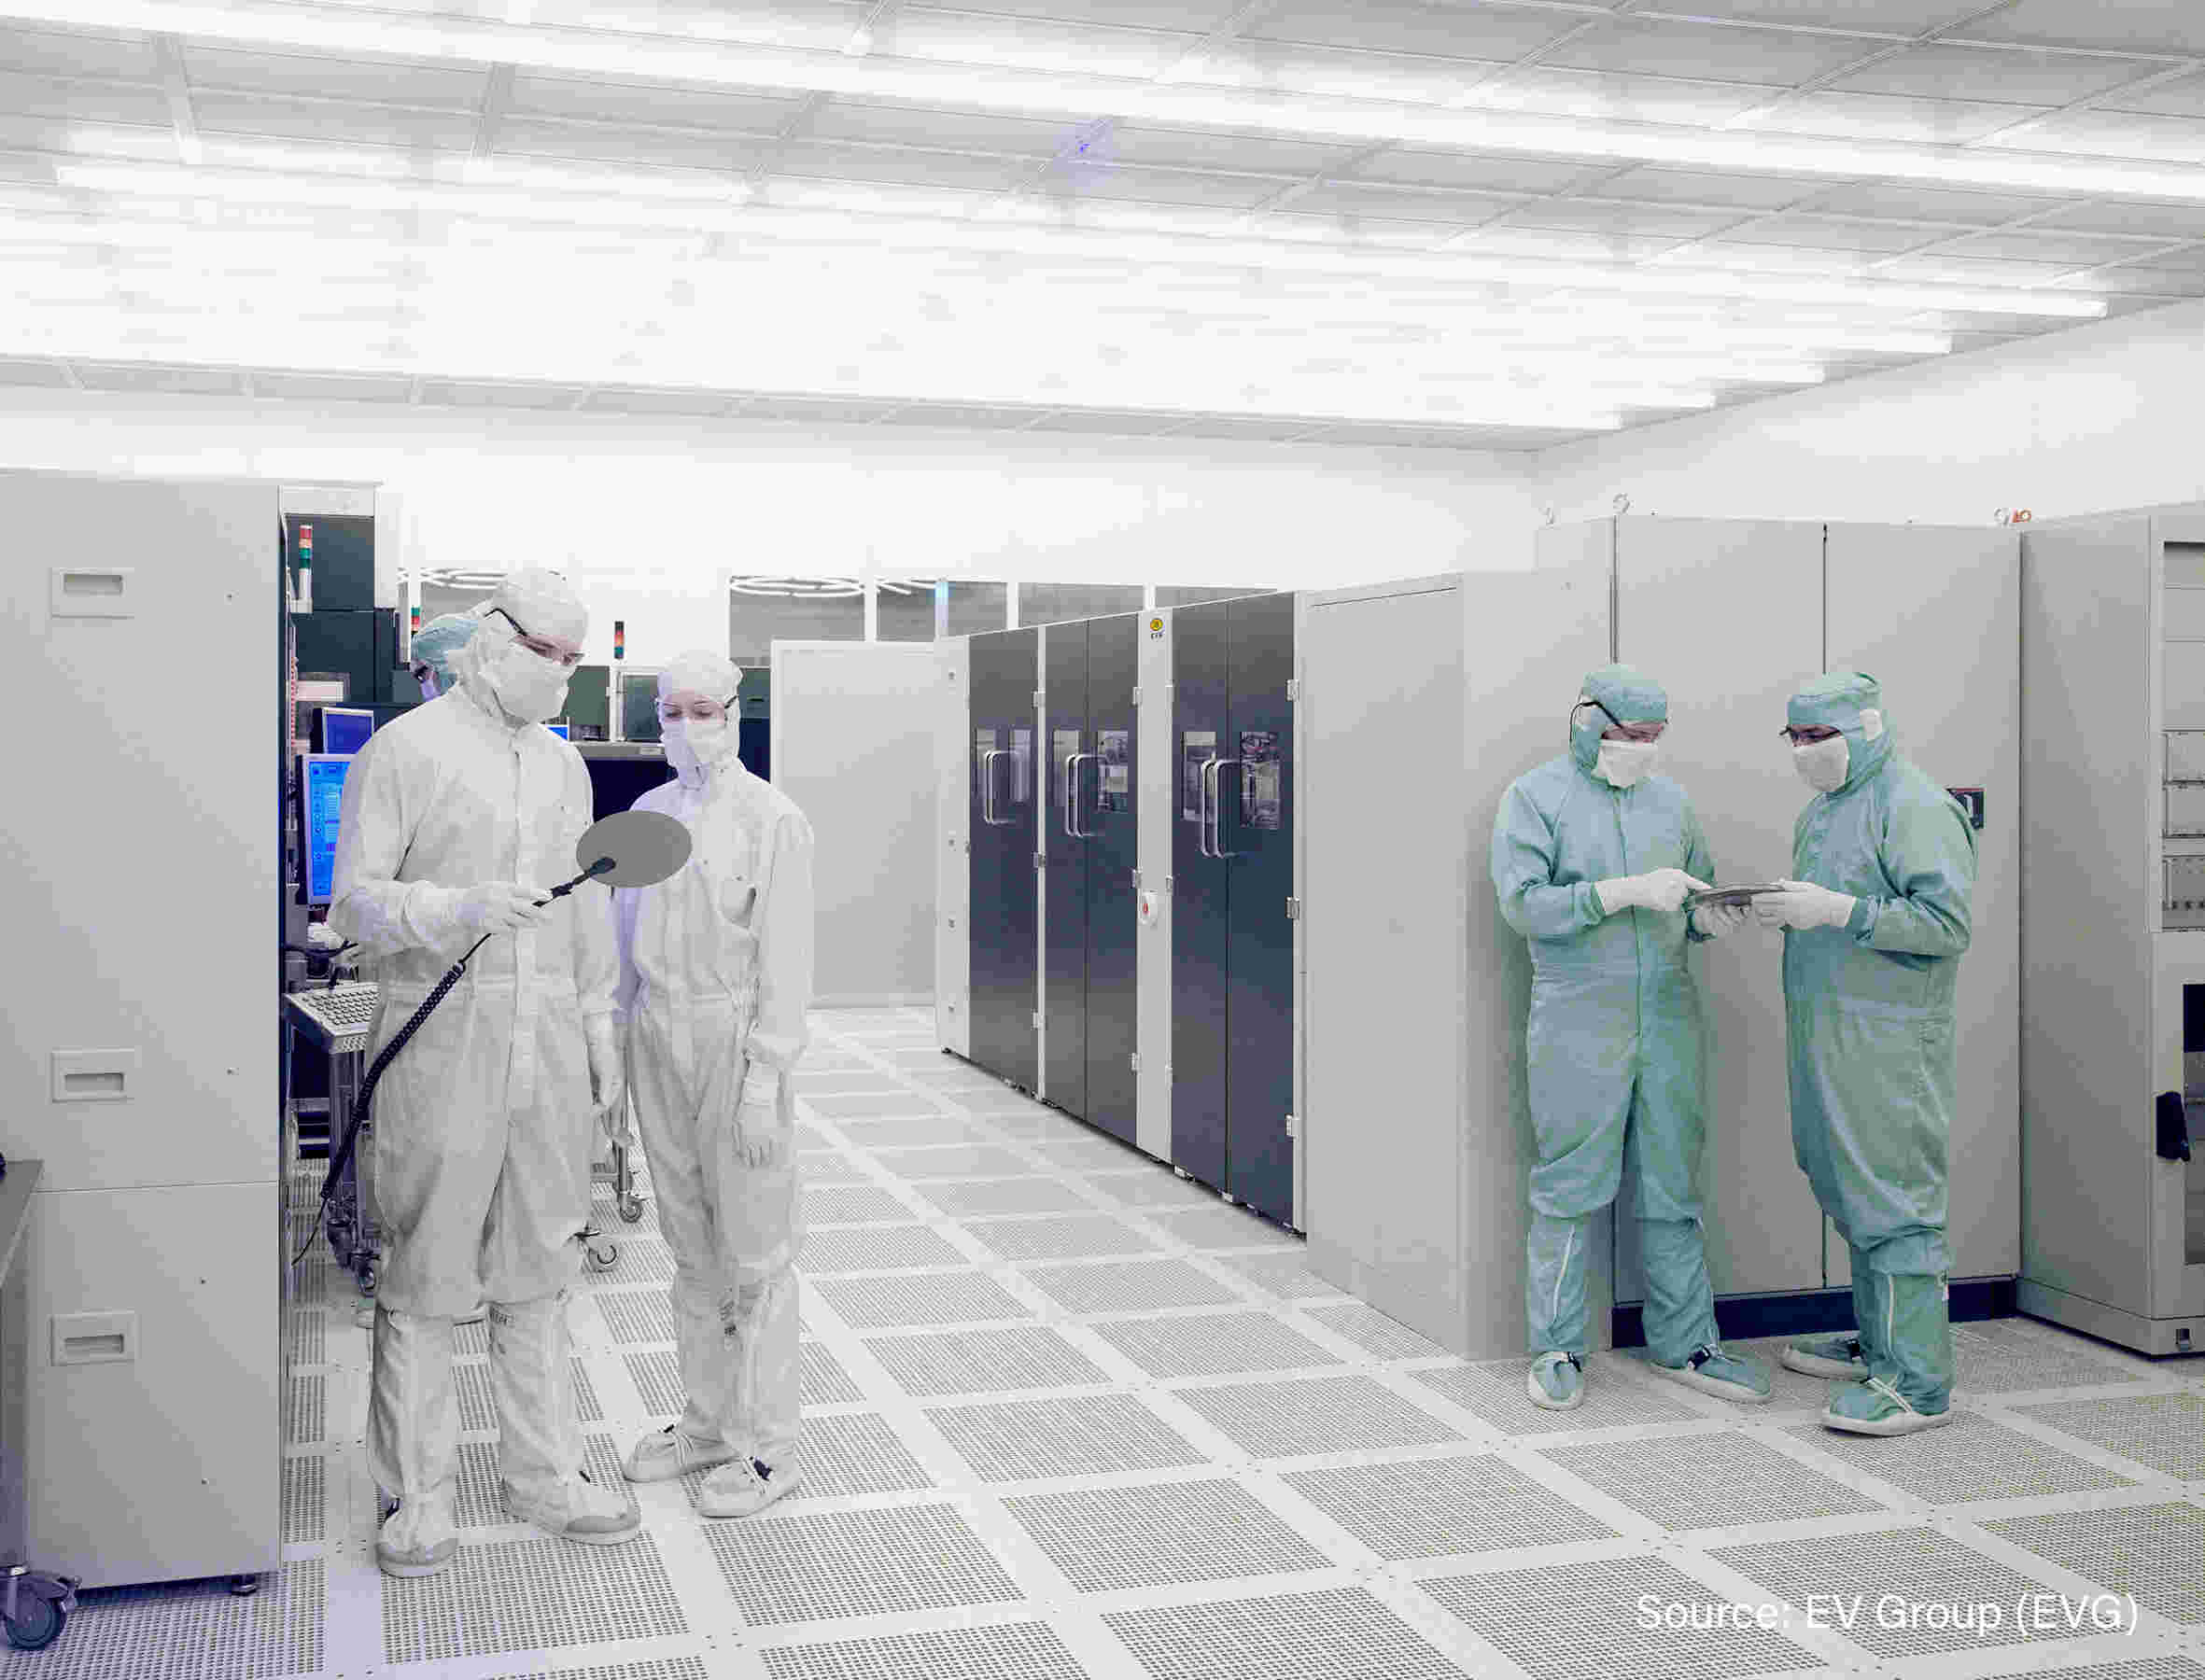 The Heterogeneous Integration Competence Center™ combines EV Group's world-class wafer bonding, thin-wafer handling, and lithography products and expertise, as well as pilot-line production facilities and services at its state-of-the-art cleanroom facilities.